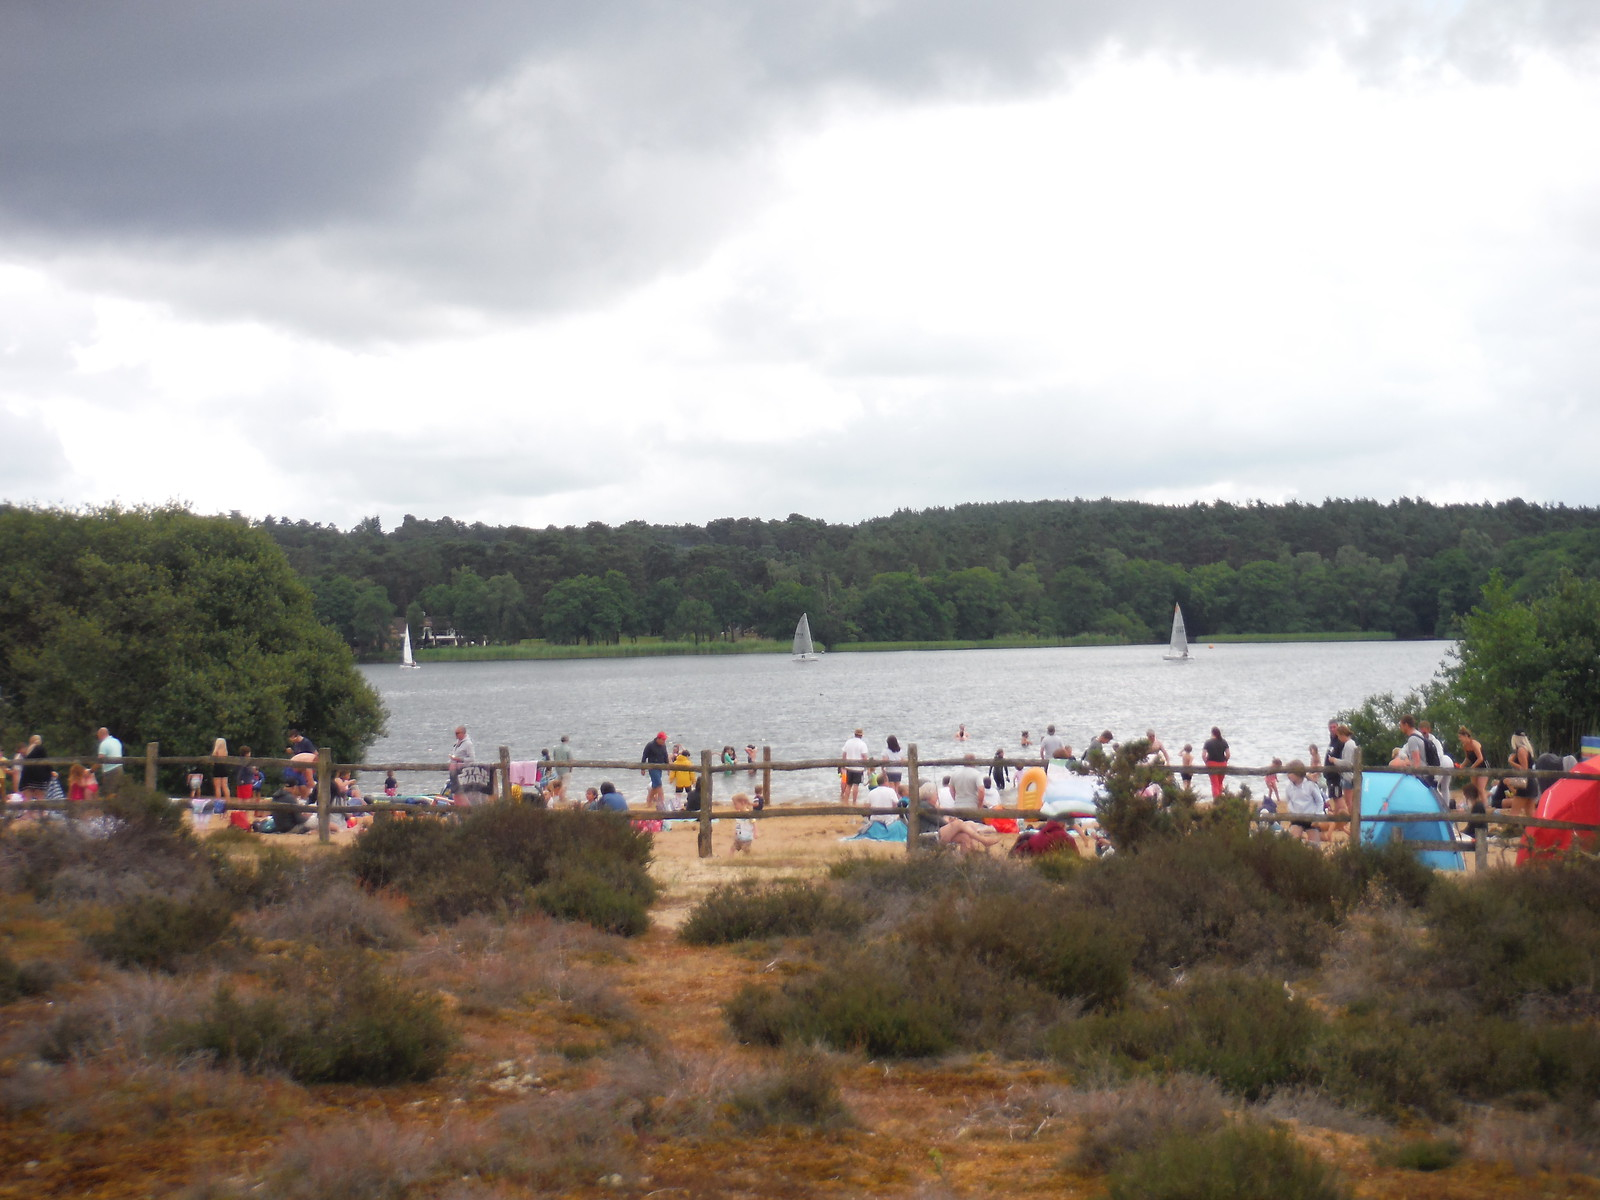 Beach at Frensham Great Pond, during Covid Lockdown SWC Walk 184 - Bentley to Farnham